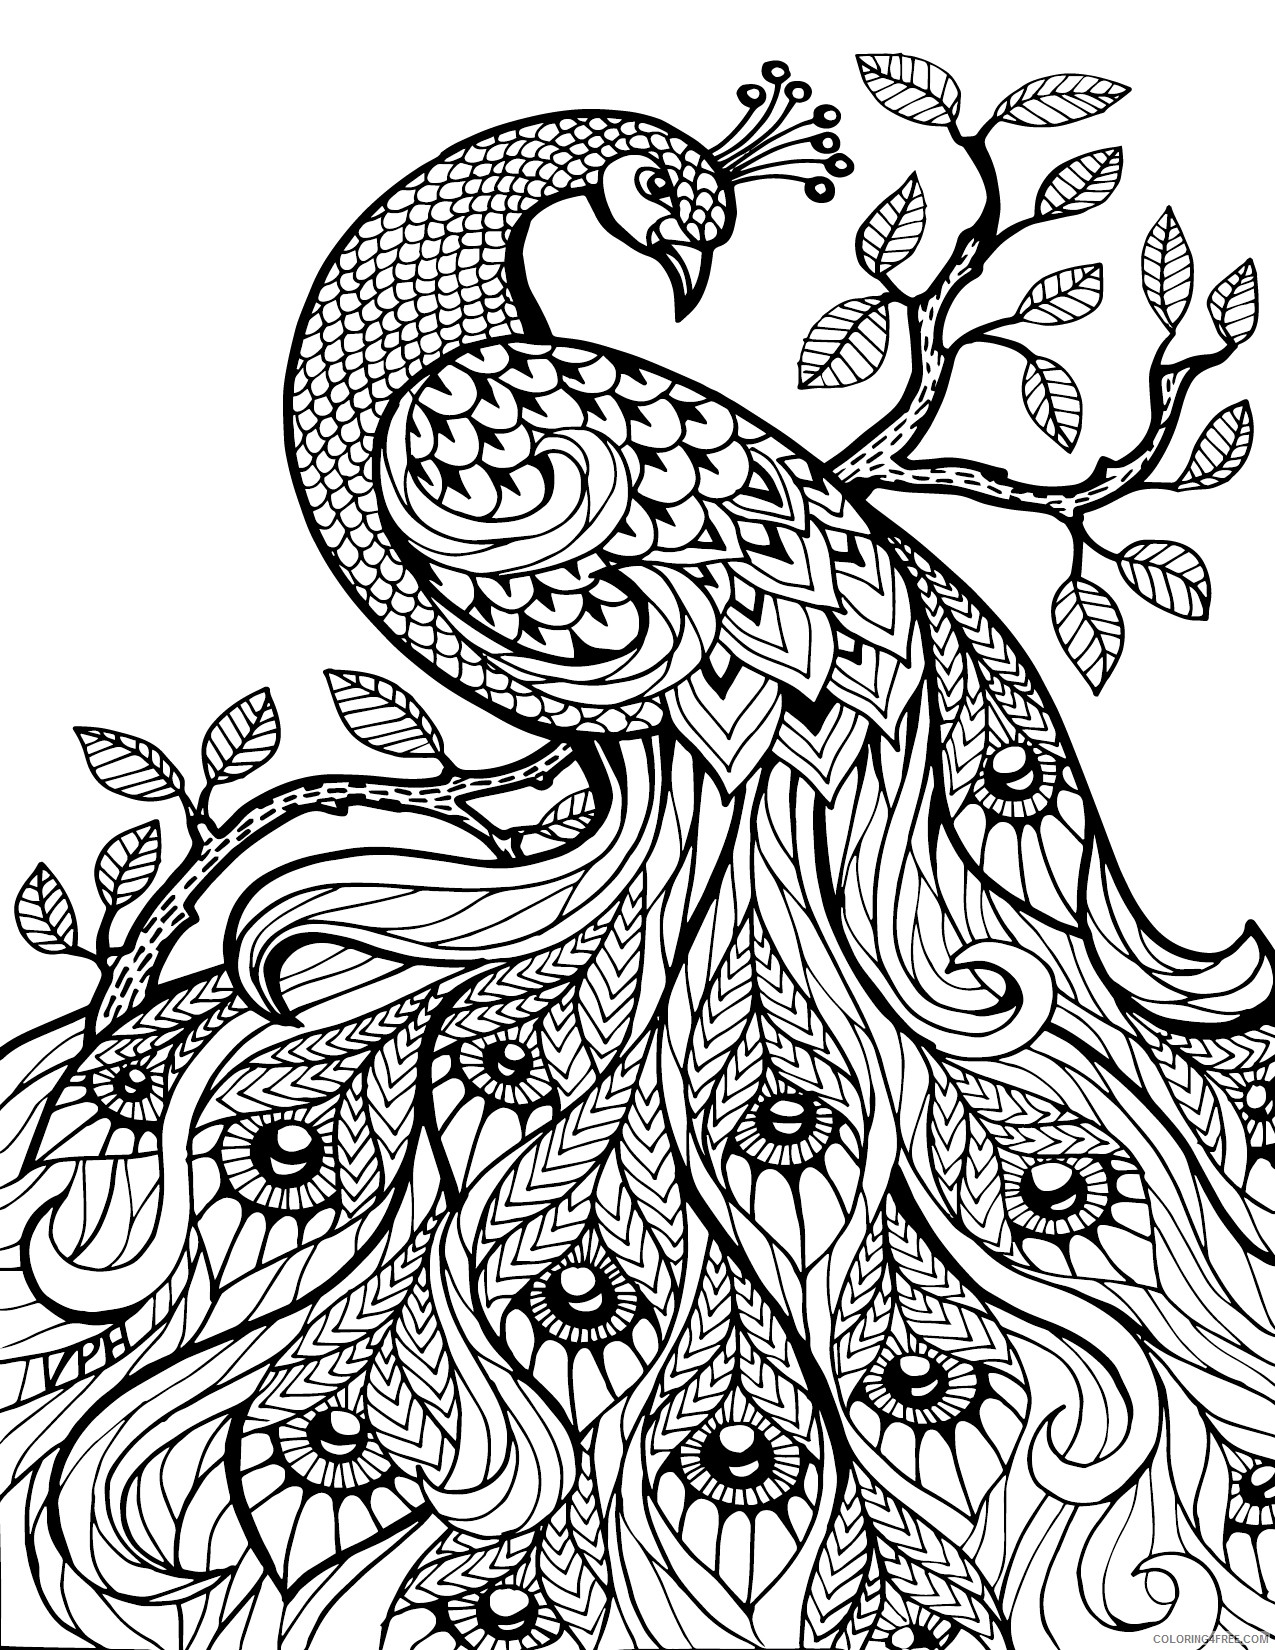 peacock design coloring pages Coloring4free